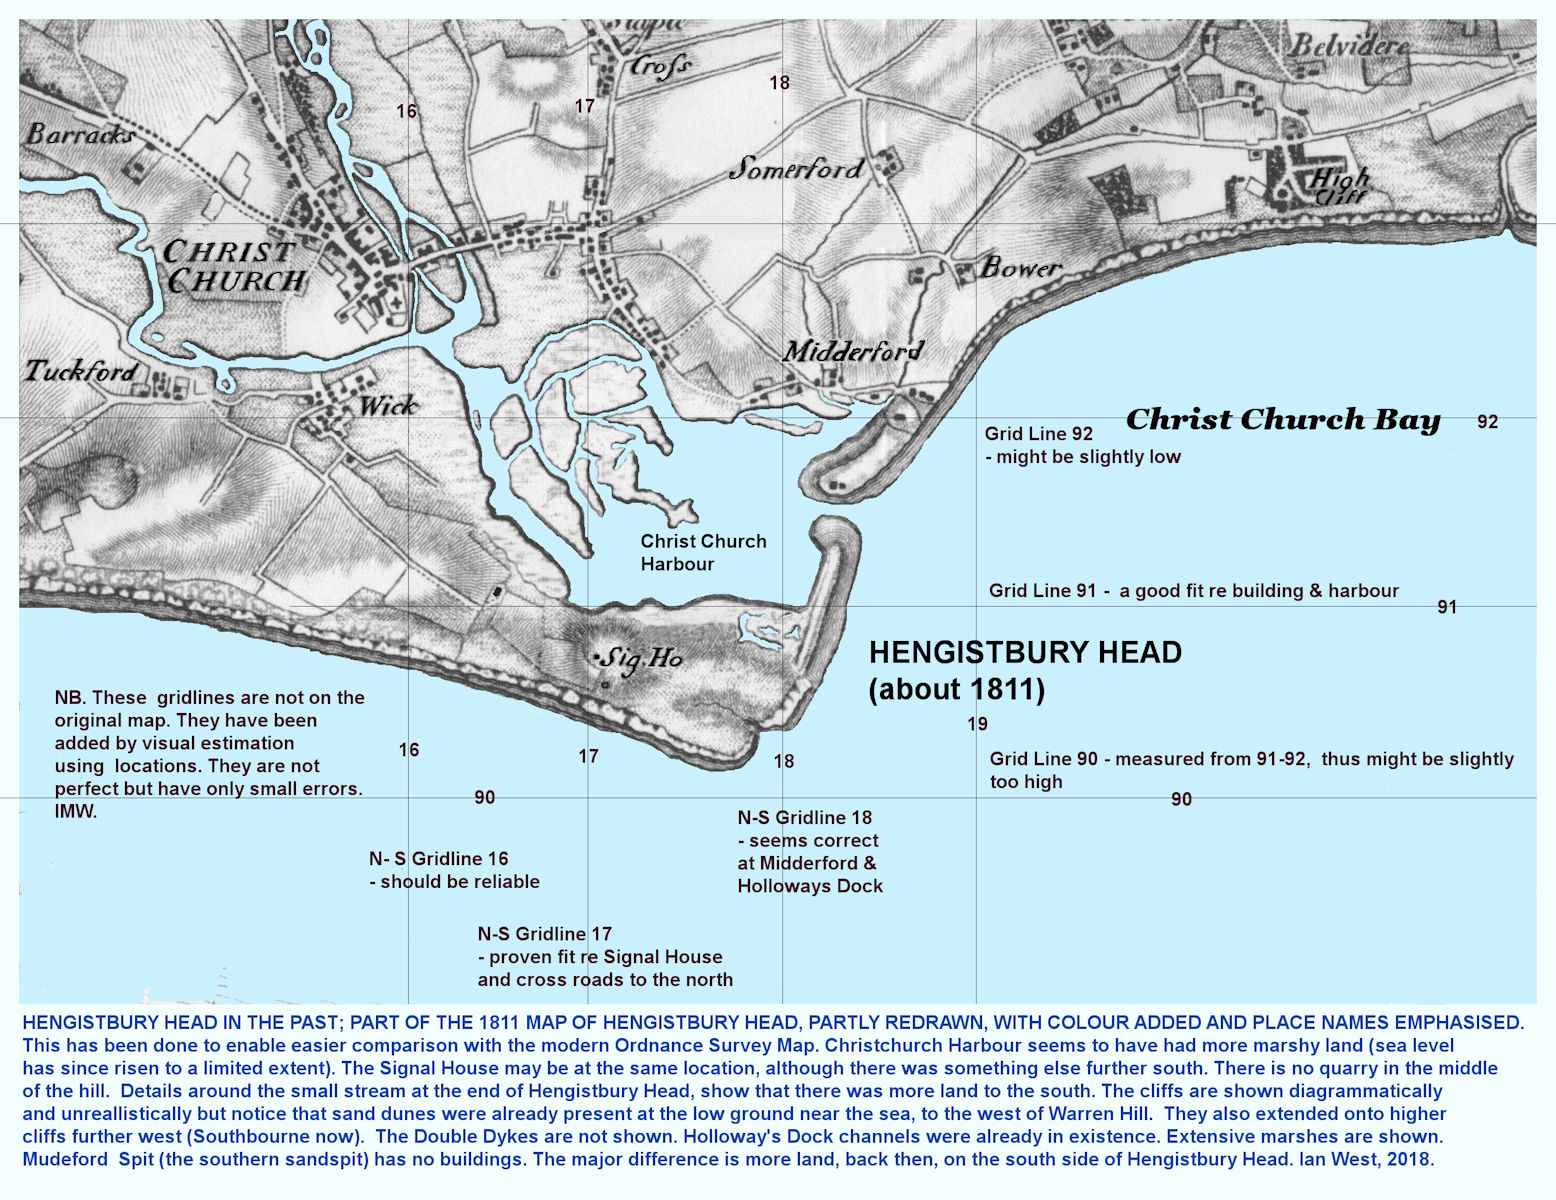 A very modified and partly redrawn map of Hengistbury Head based on a topo map of about 1811, with an attempt by IMW to add some approximate grid lines